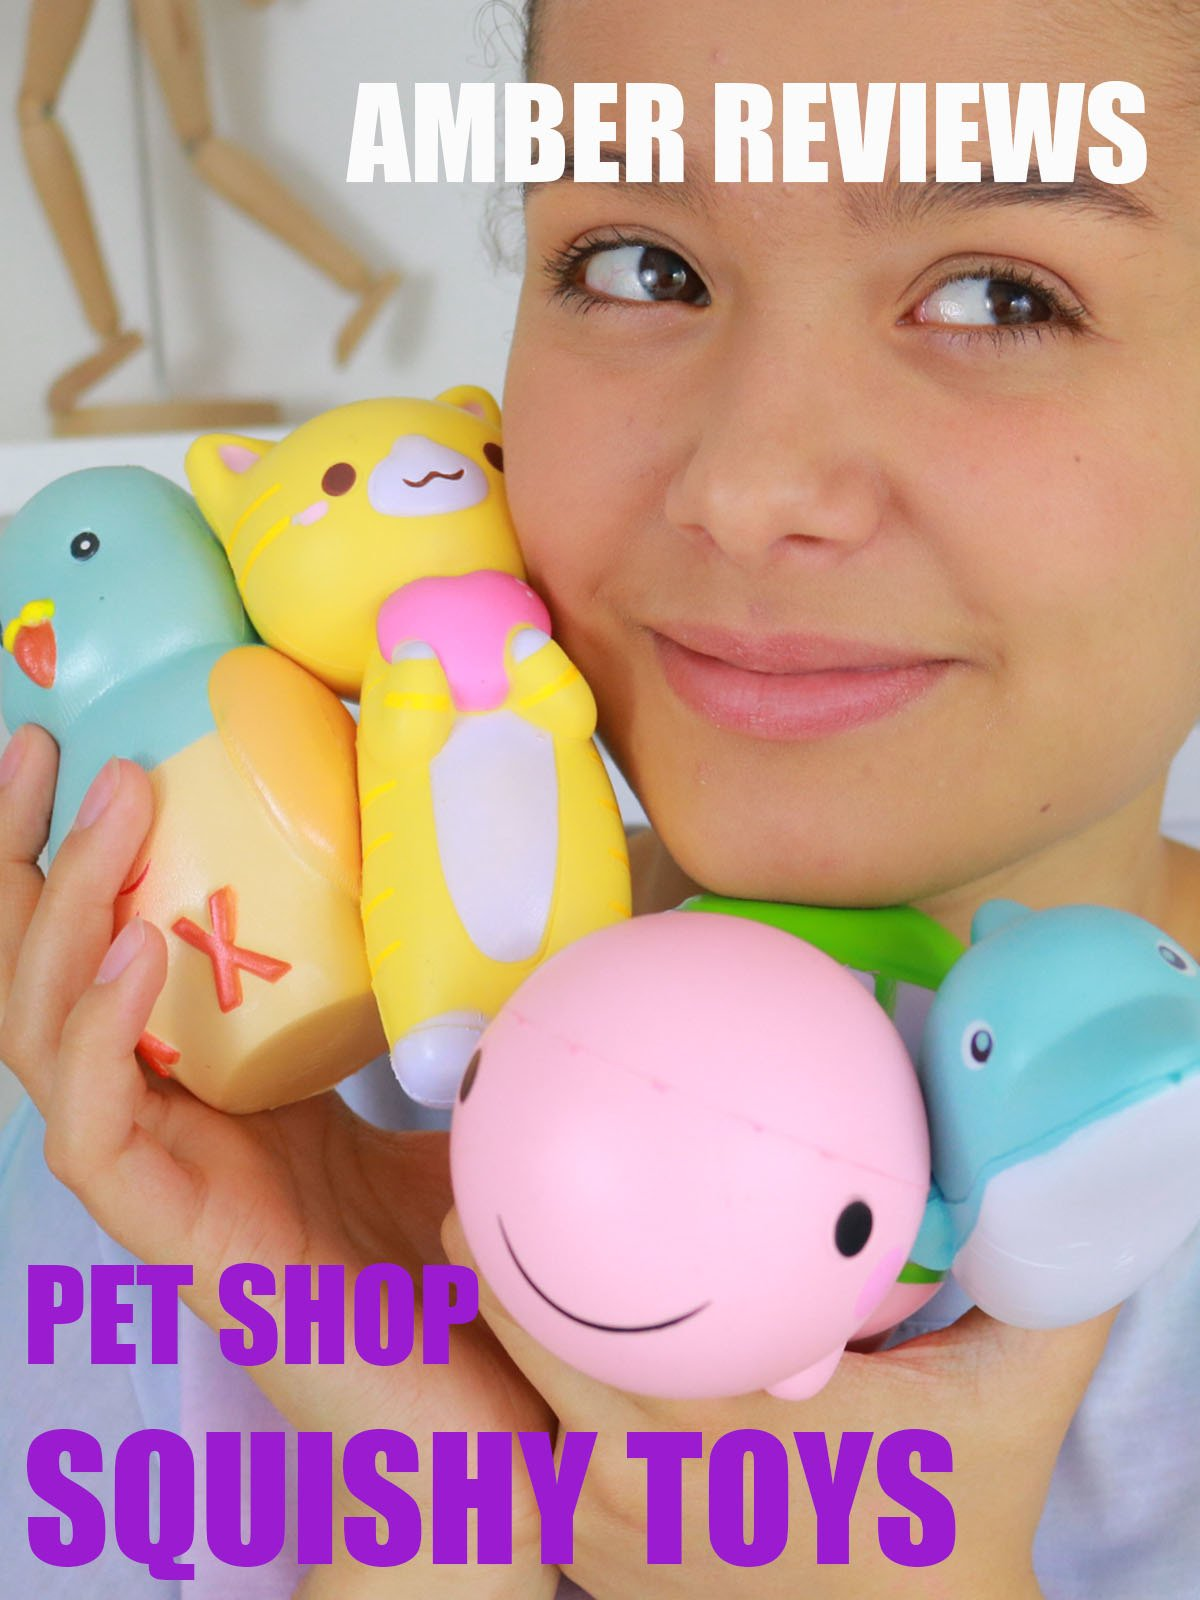 Amber Reviews Pet Shop Squishy Toys on Amazon Prime Instant Video UK